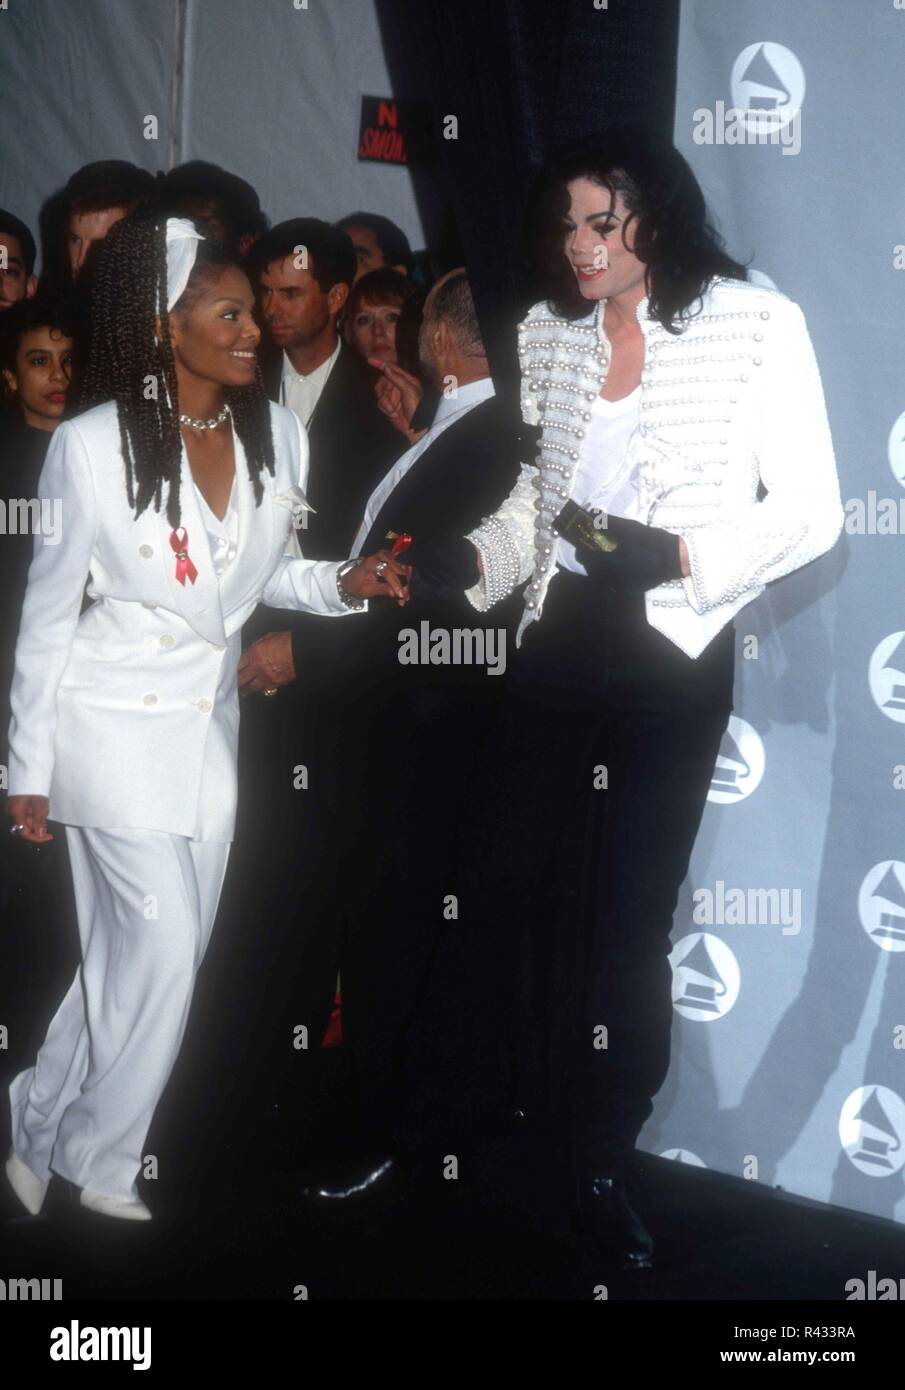 los angeles ca february 24 singer janet jackson and brother singer michael jackson attend the 35th annual grammy awards on february 24 1993 at the shrine auditorium in los angeles california https www alamy com los angeles ca february 24 singer janet jackson and brother singer michael jackson attend the 35th annual grammy awards on february 24 1993 at the shrine auditorium in los angeles california photo by barry kingalamy stock photo image226262270 html